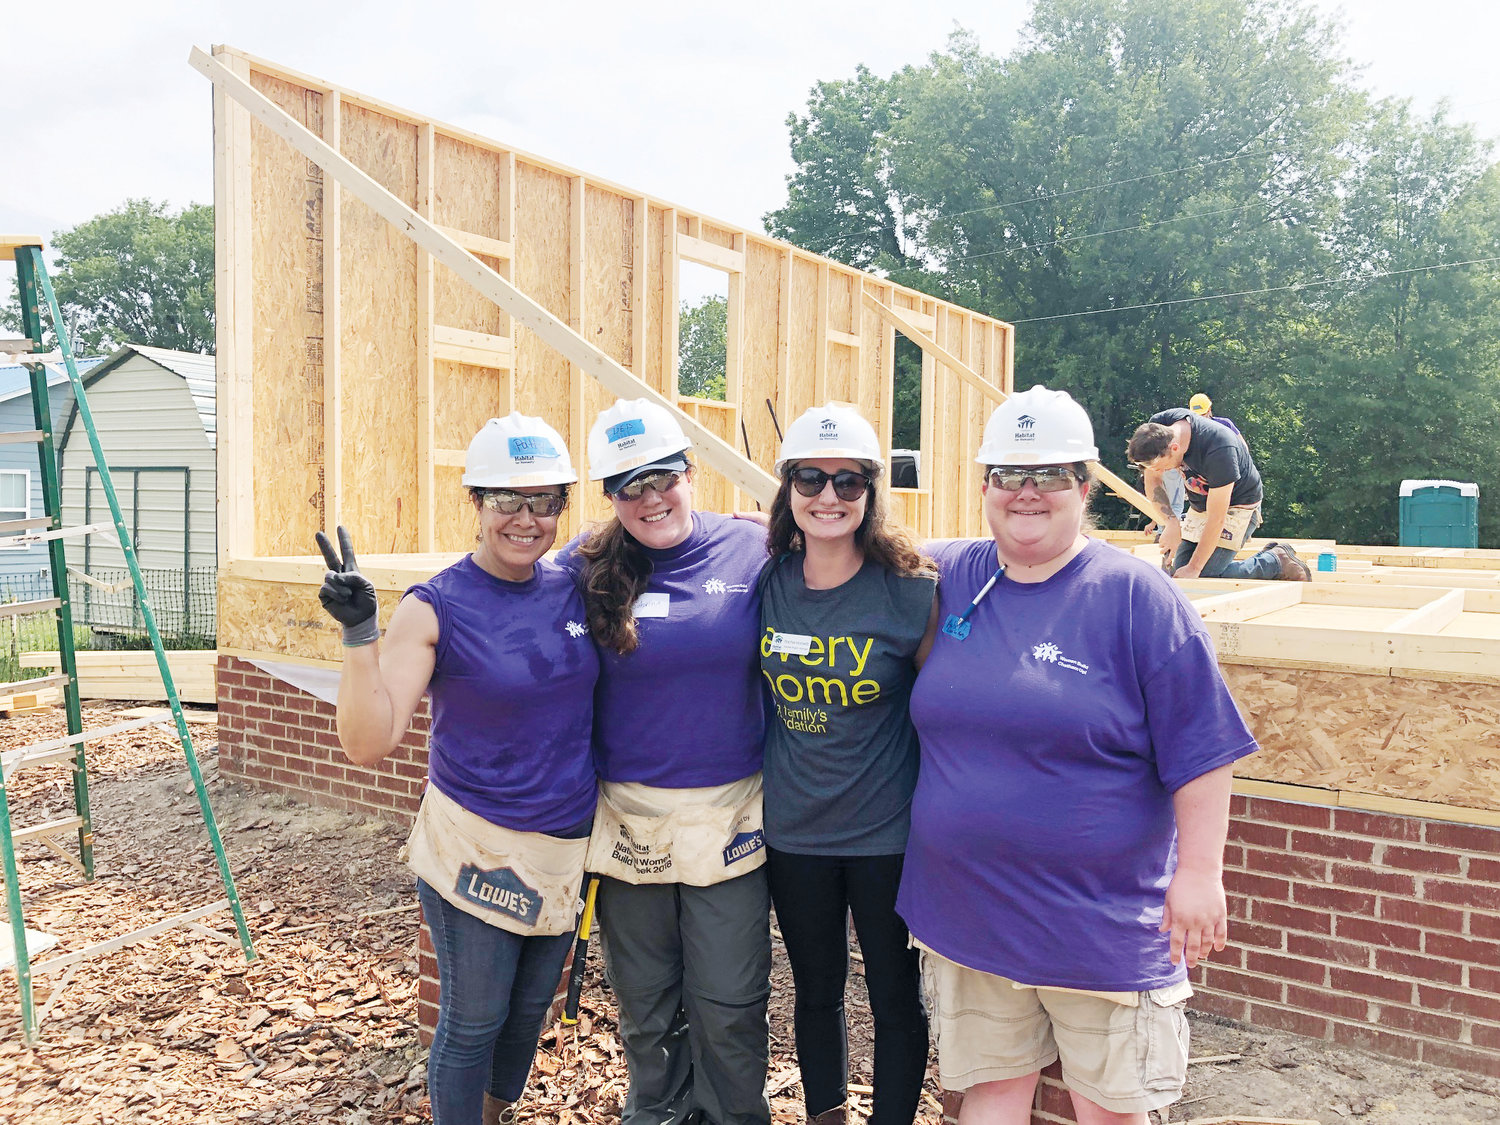 From left, Chatham Habitat for Humanity employees Patricia Morales (Family Services Director), Sabrina Bonomolo (ReStore Associate), Rachel Horowitz and Amber Thompson (ReStore Too Manager) pose at a work site.